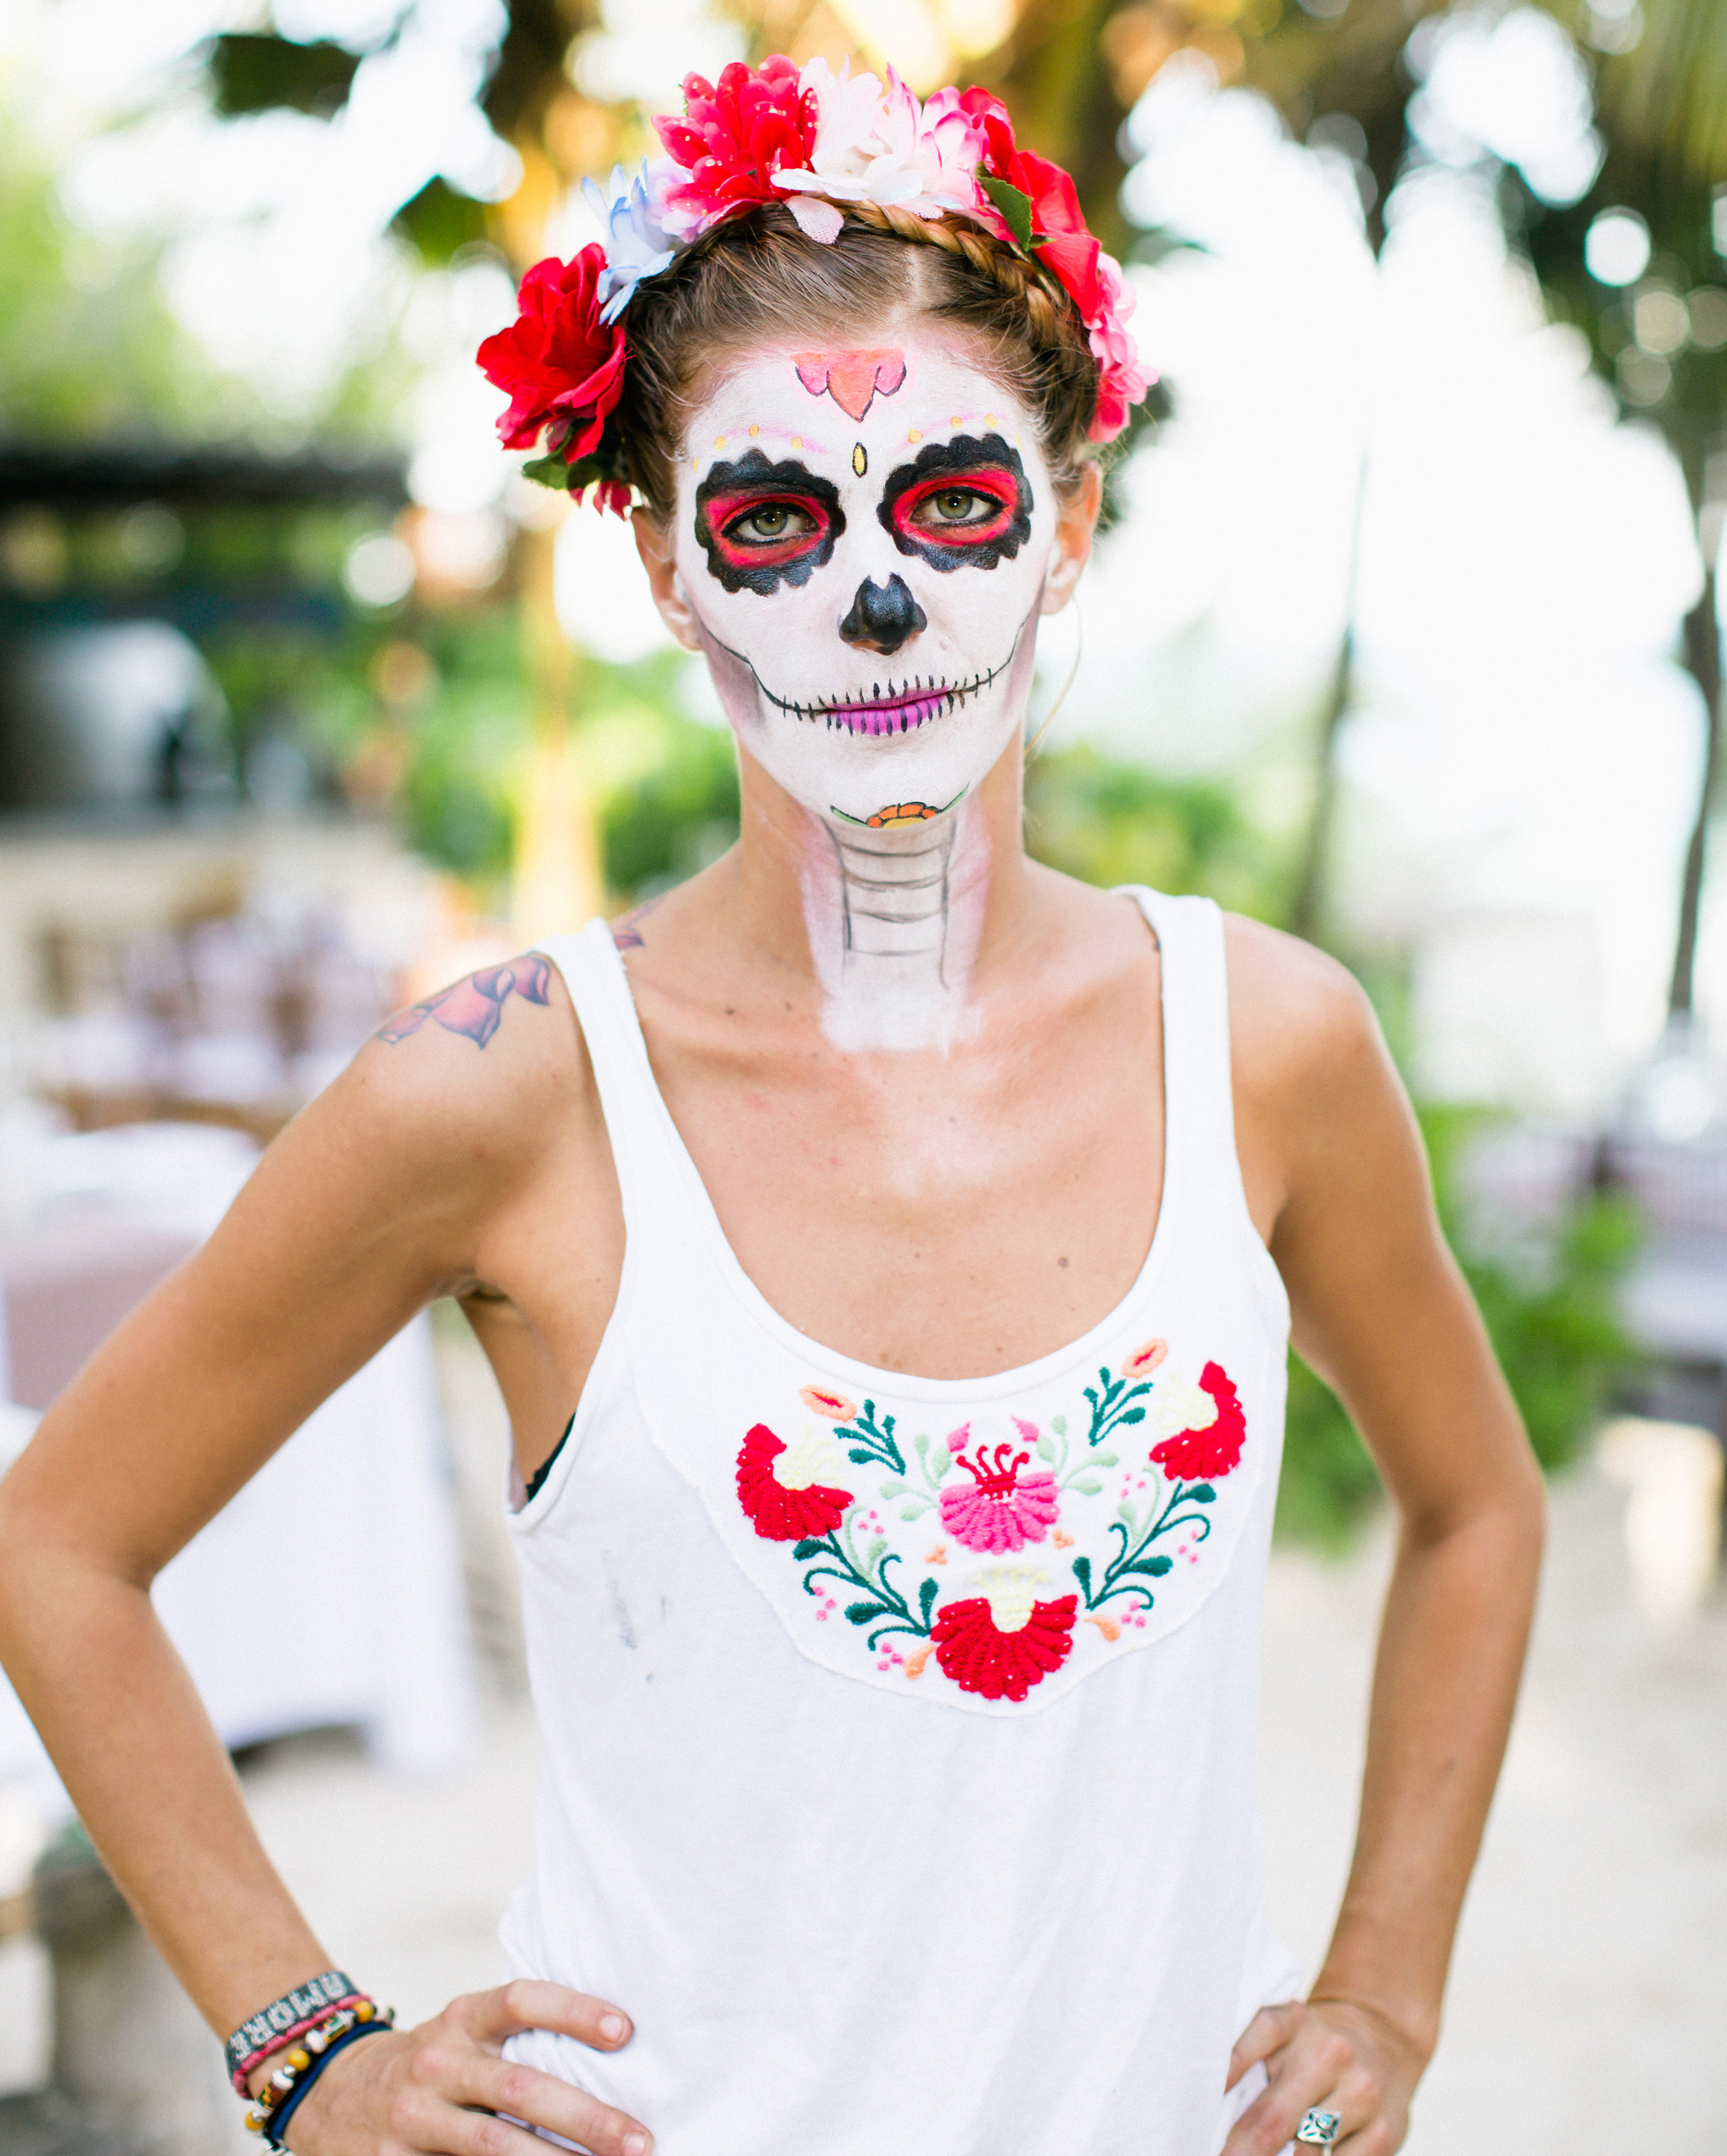 olivia-keith-wedding-facepaint-90-s112304-0815.jpg